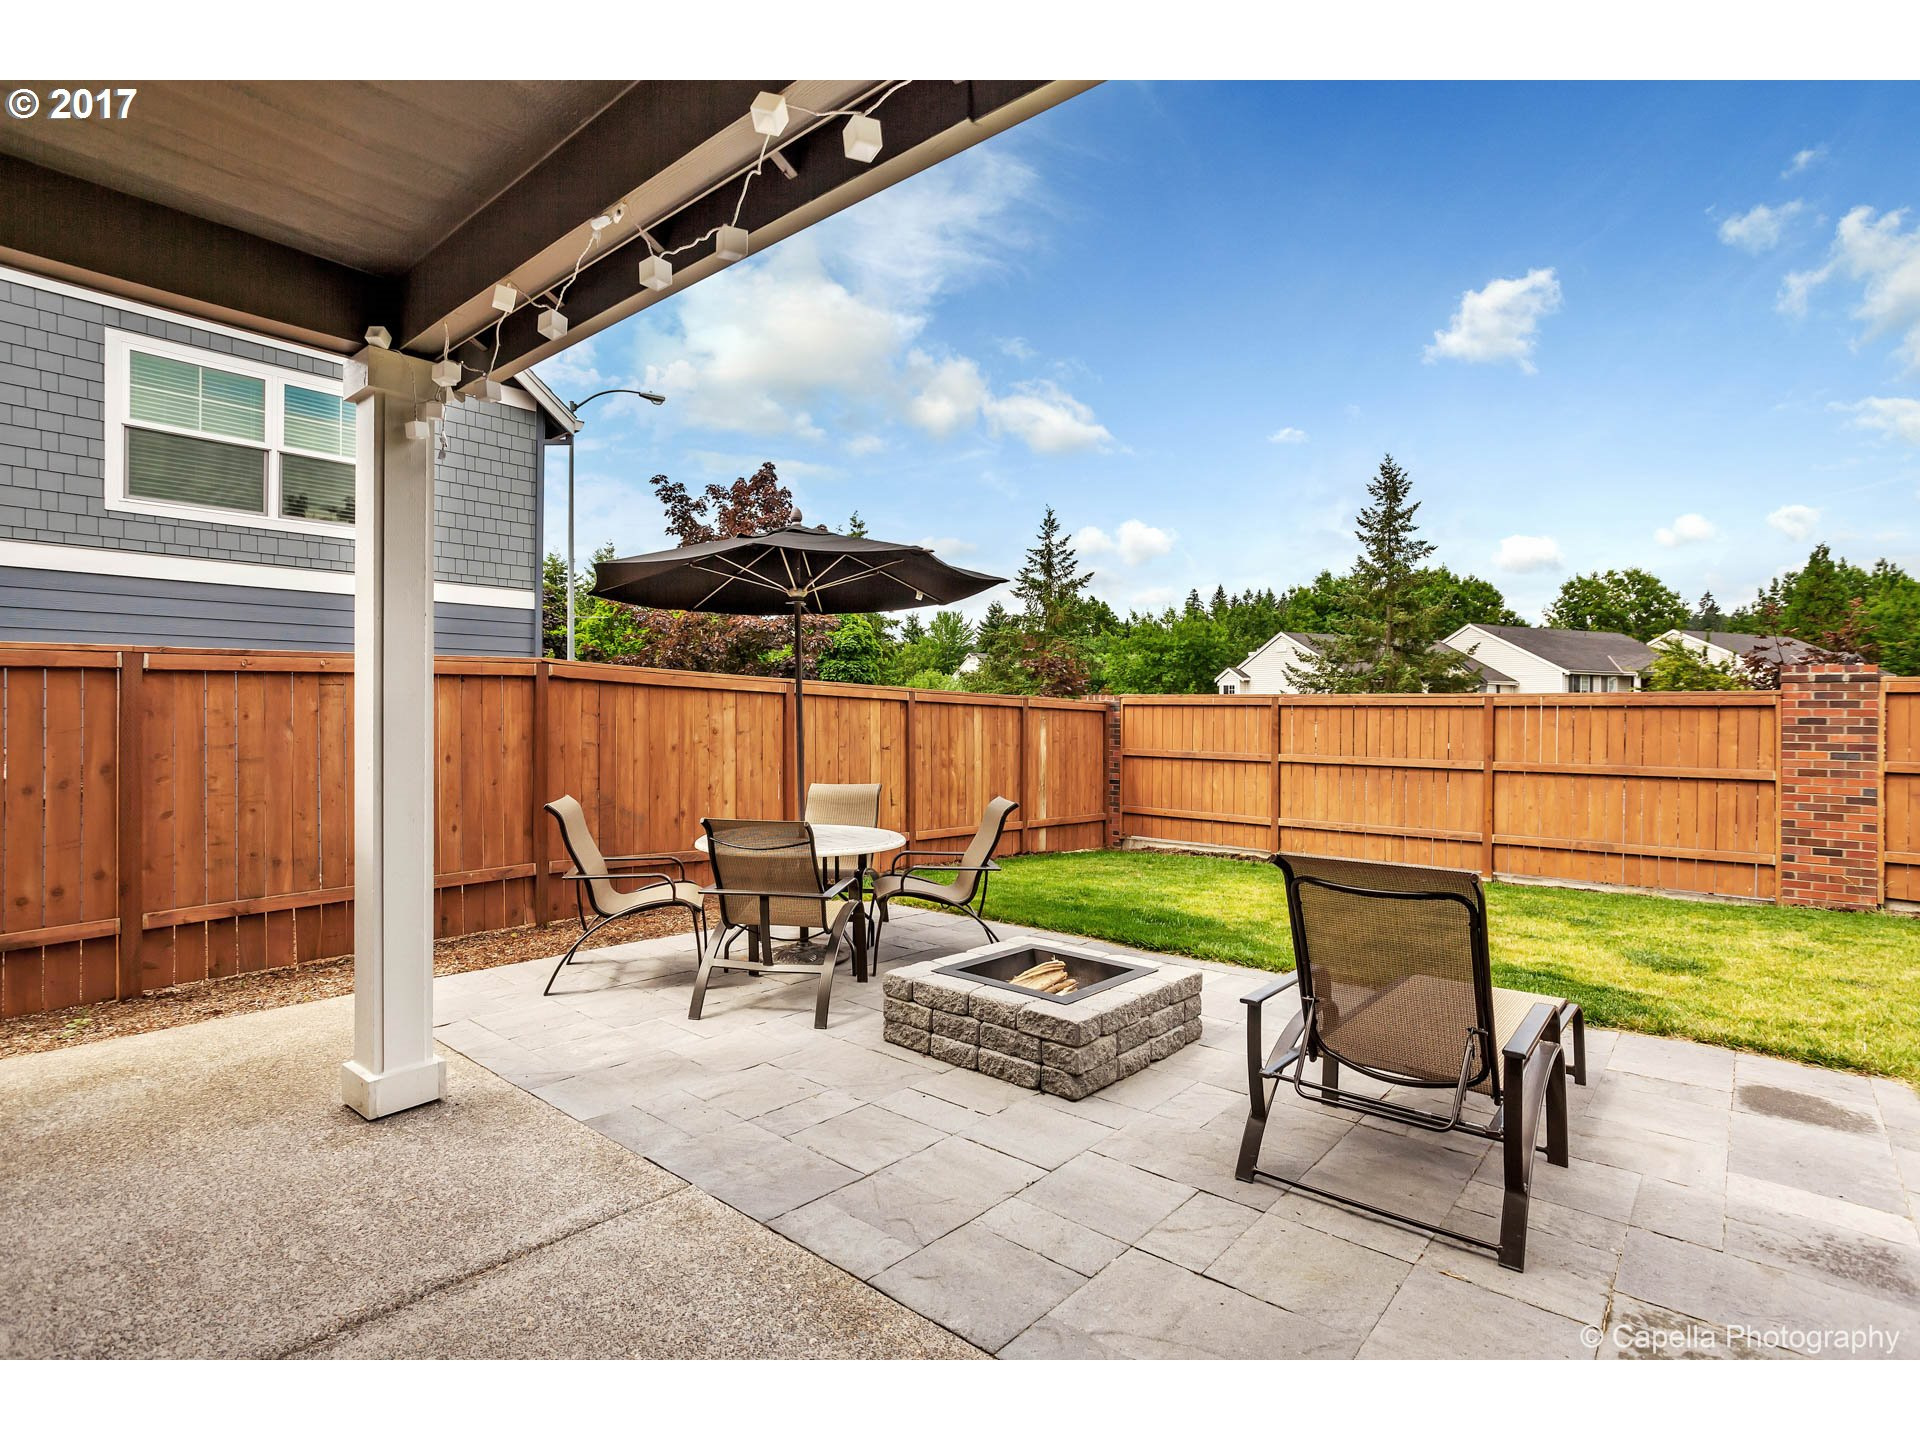 10315 SW 144TH AVE Beaverton, OR 97008 - MLS #: 17401869